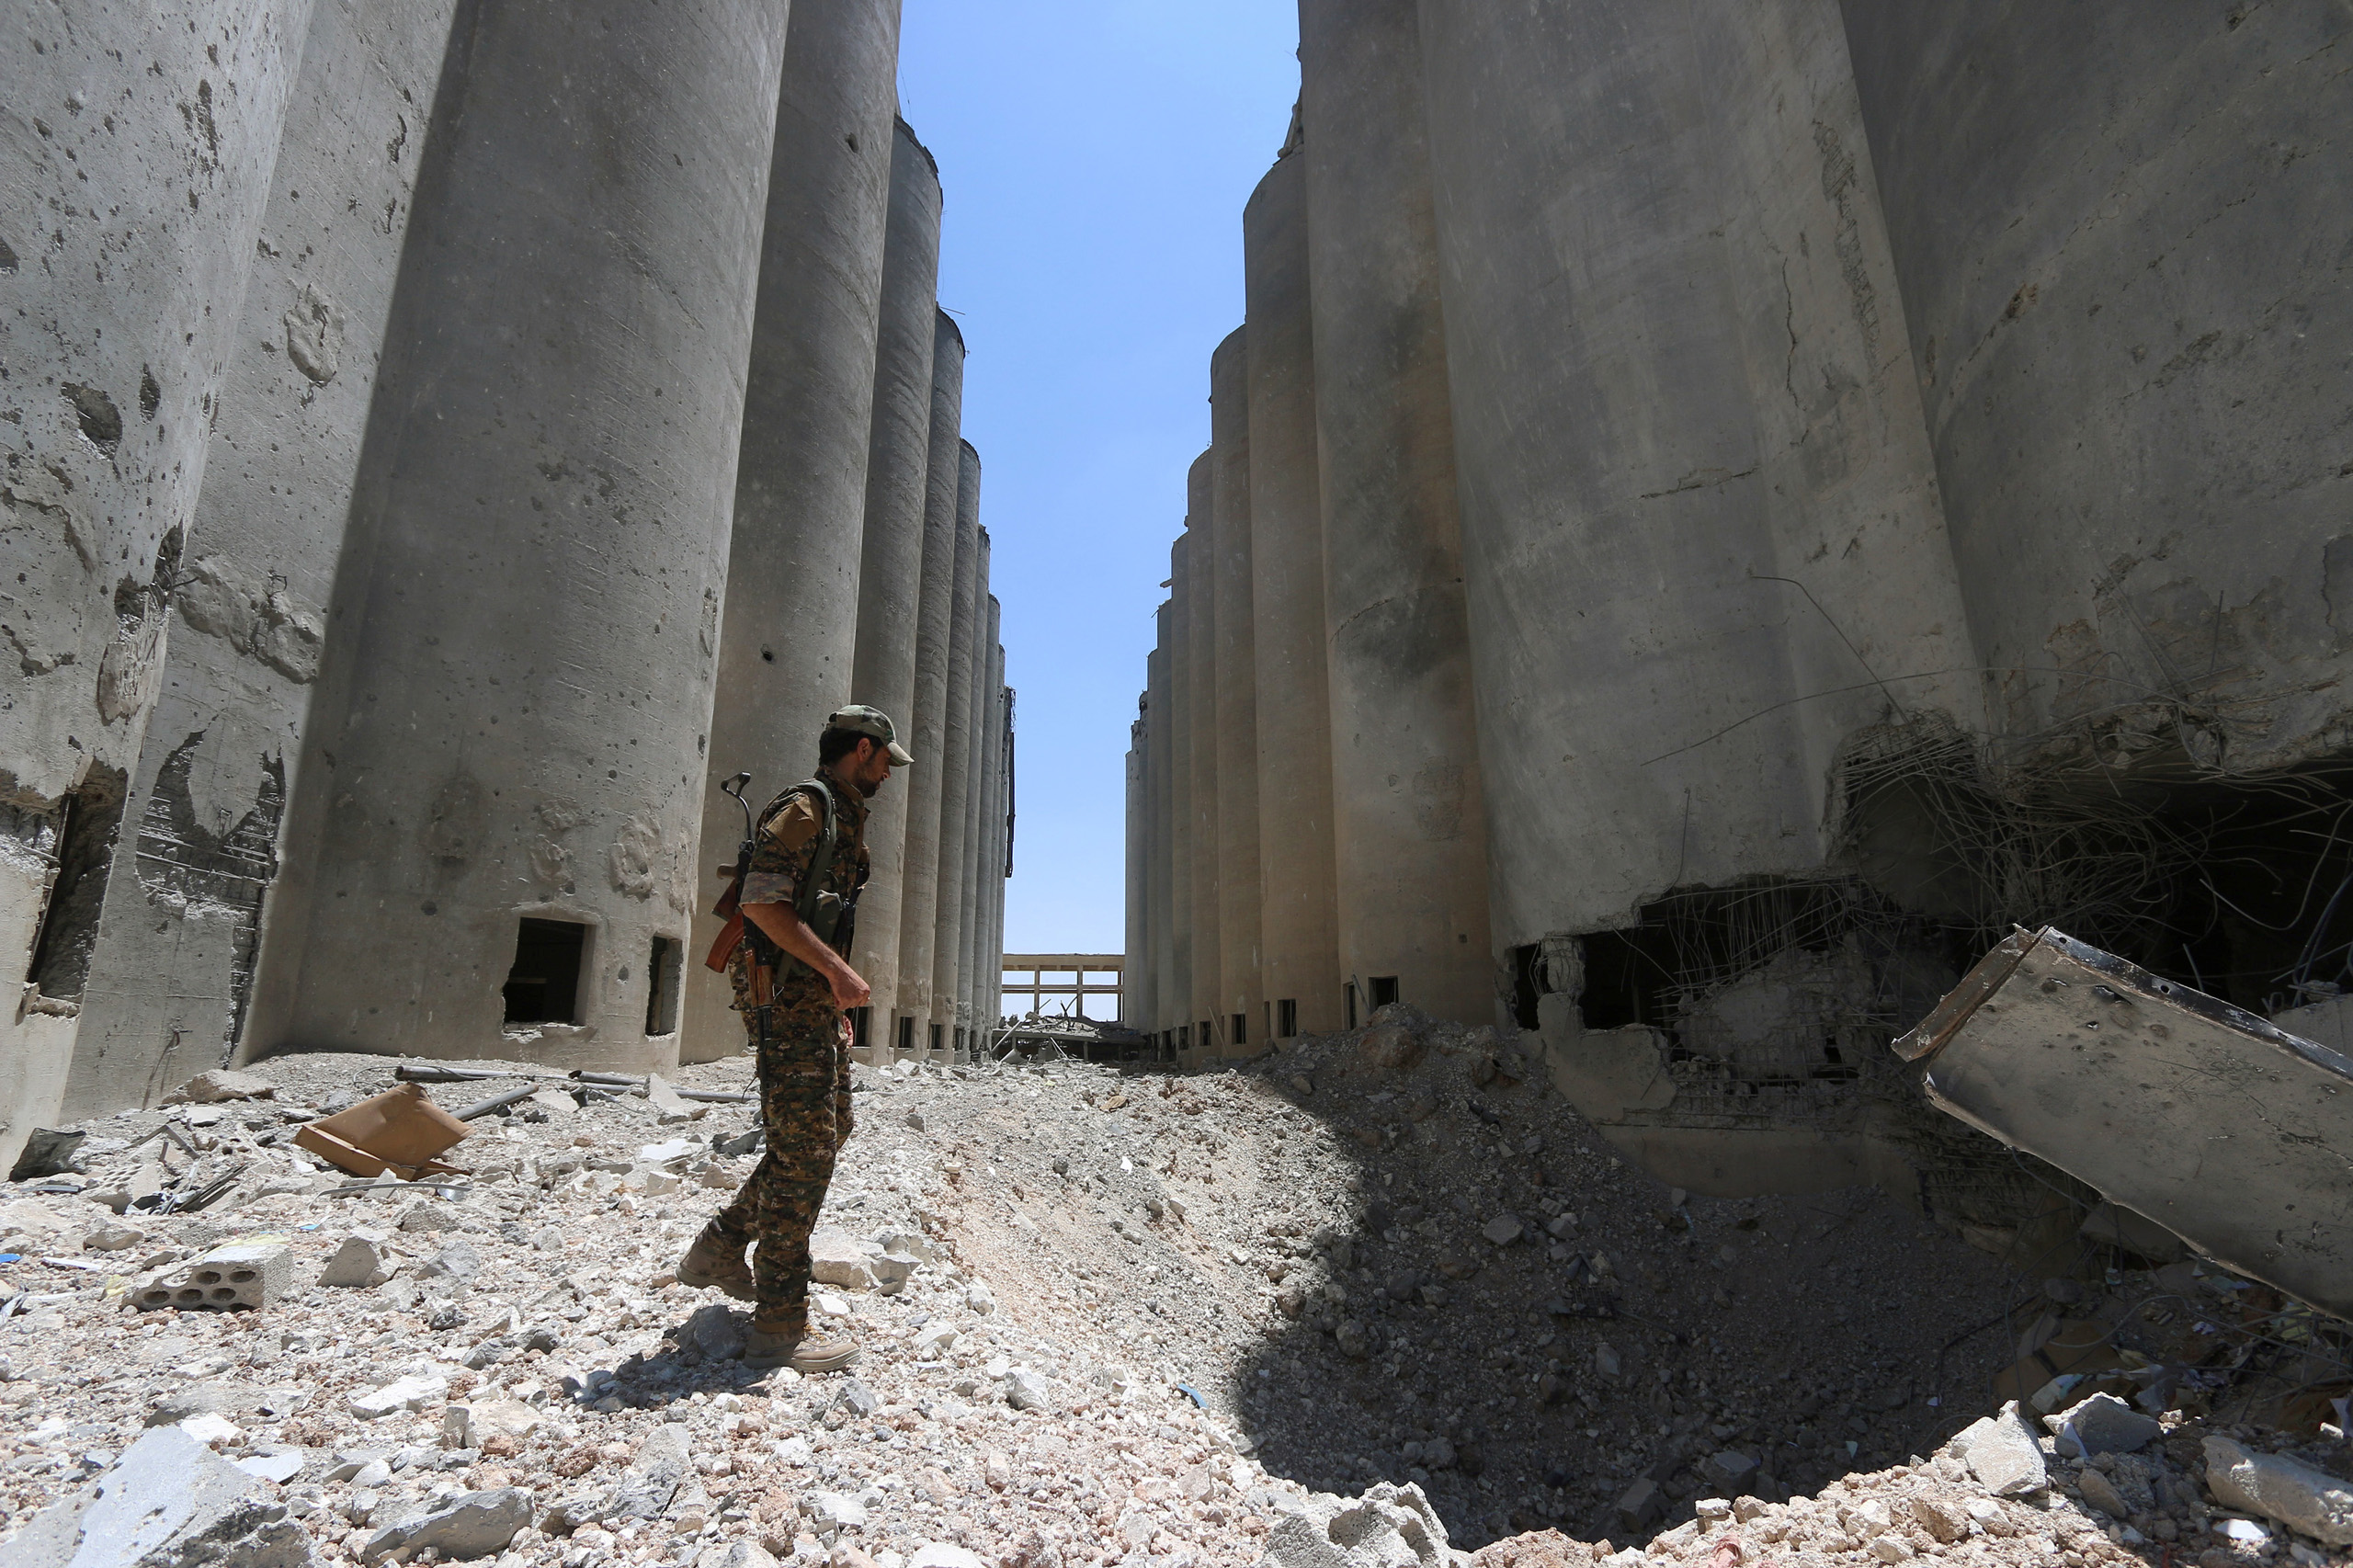 A Syria Democratic Forces (SDF) fighter walks in the silos and mills of Manbij after the SDF took control of it, in Aleppo Governorate, Syria on July 1, 2016.